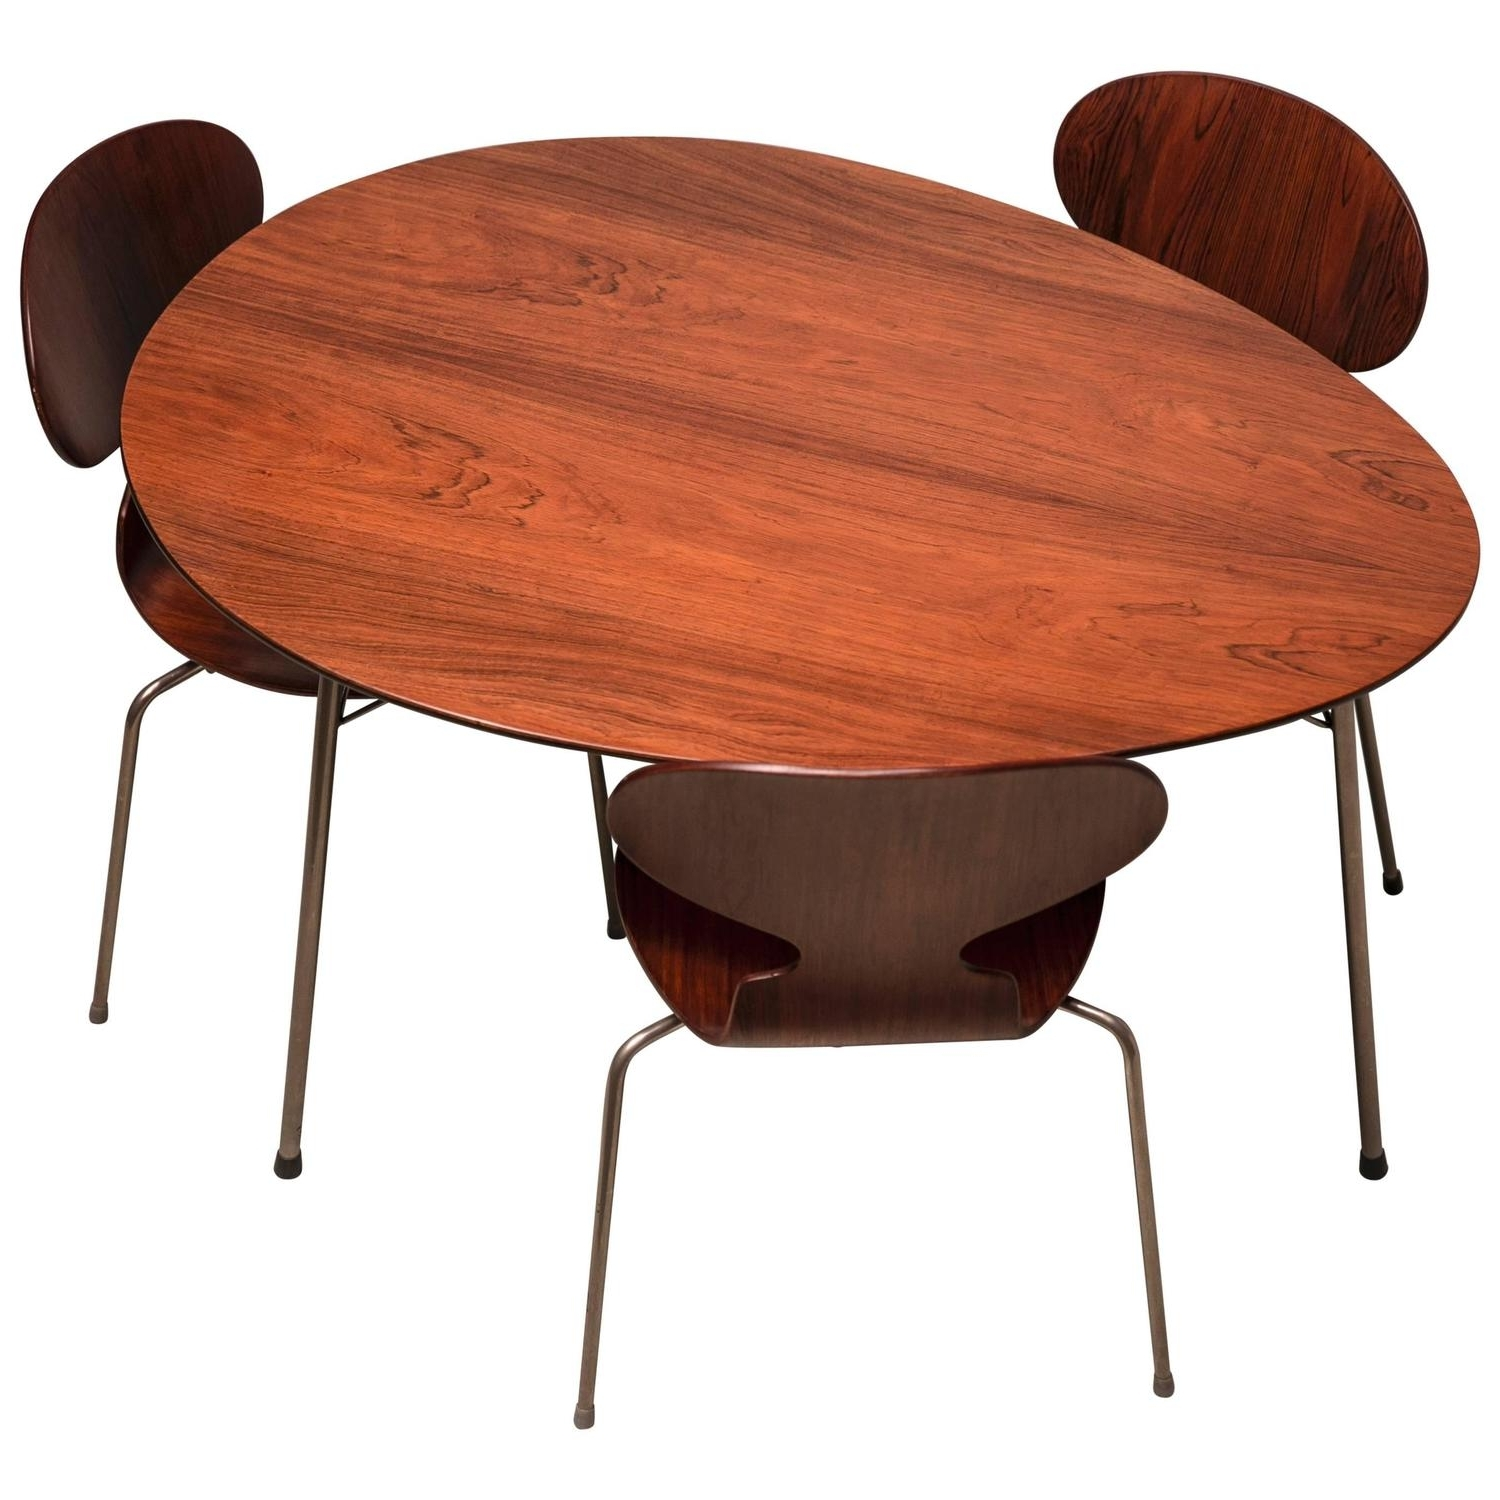 Most Recent Mid Century Modern Egg Tables Throughout Exceptional Early Brazilian Rosewood Egg Table And Ant Chairs (View 10 of 20)